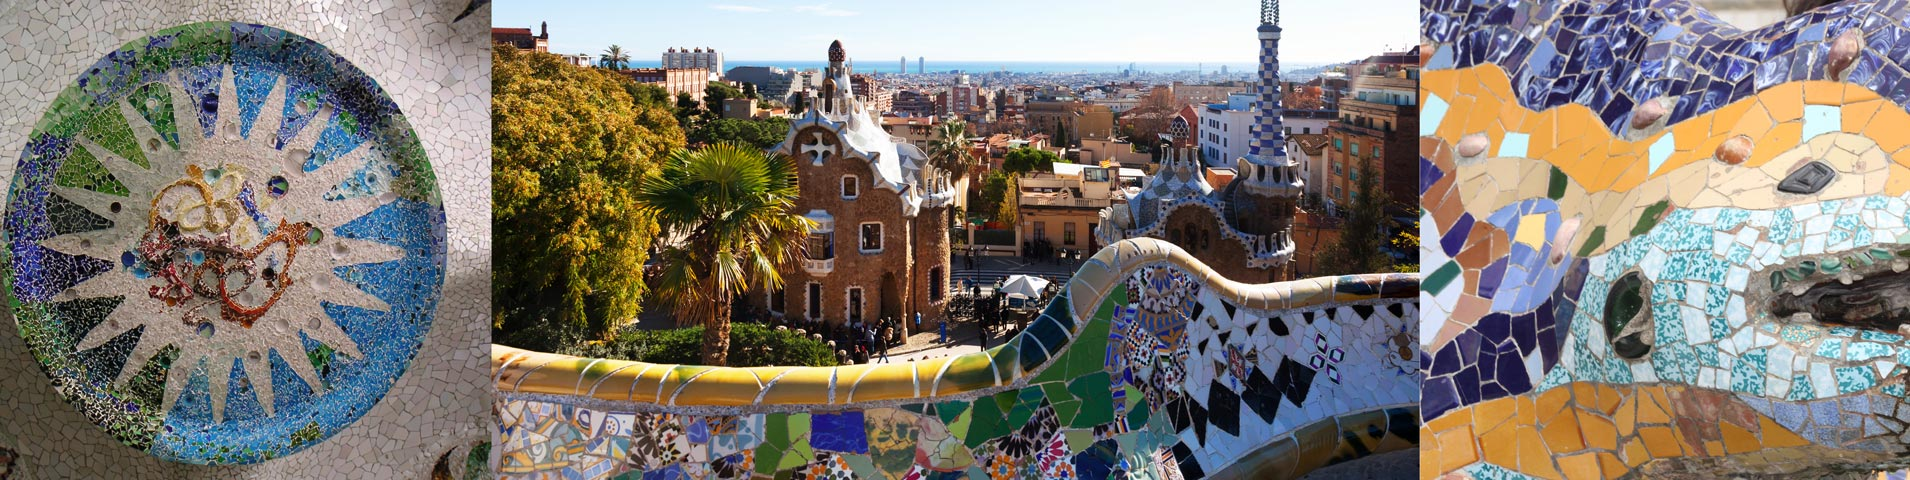 01guell